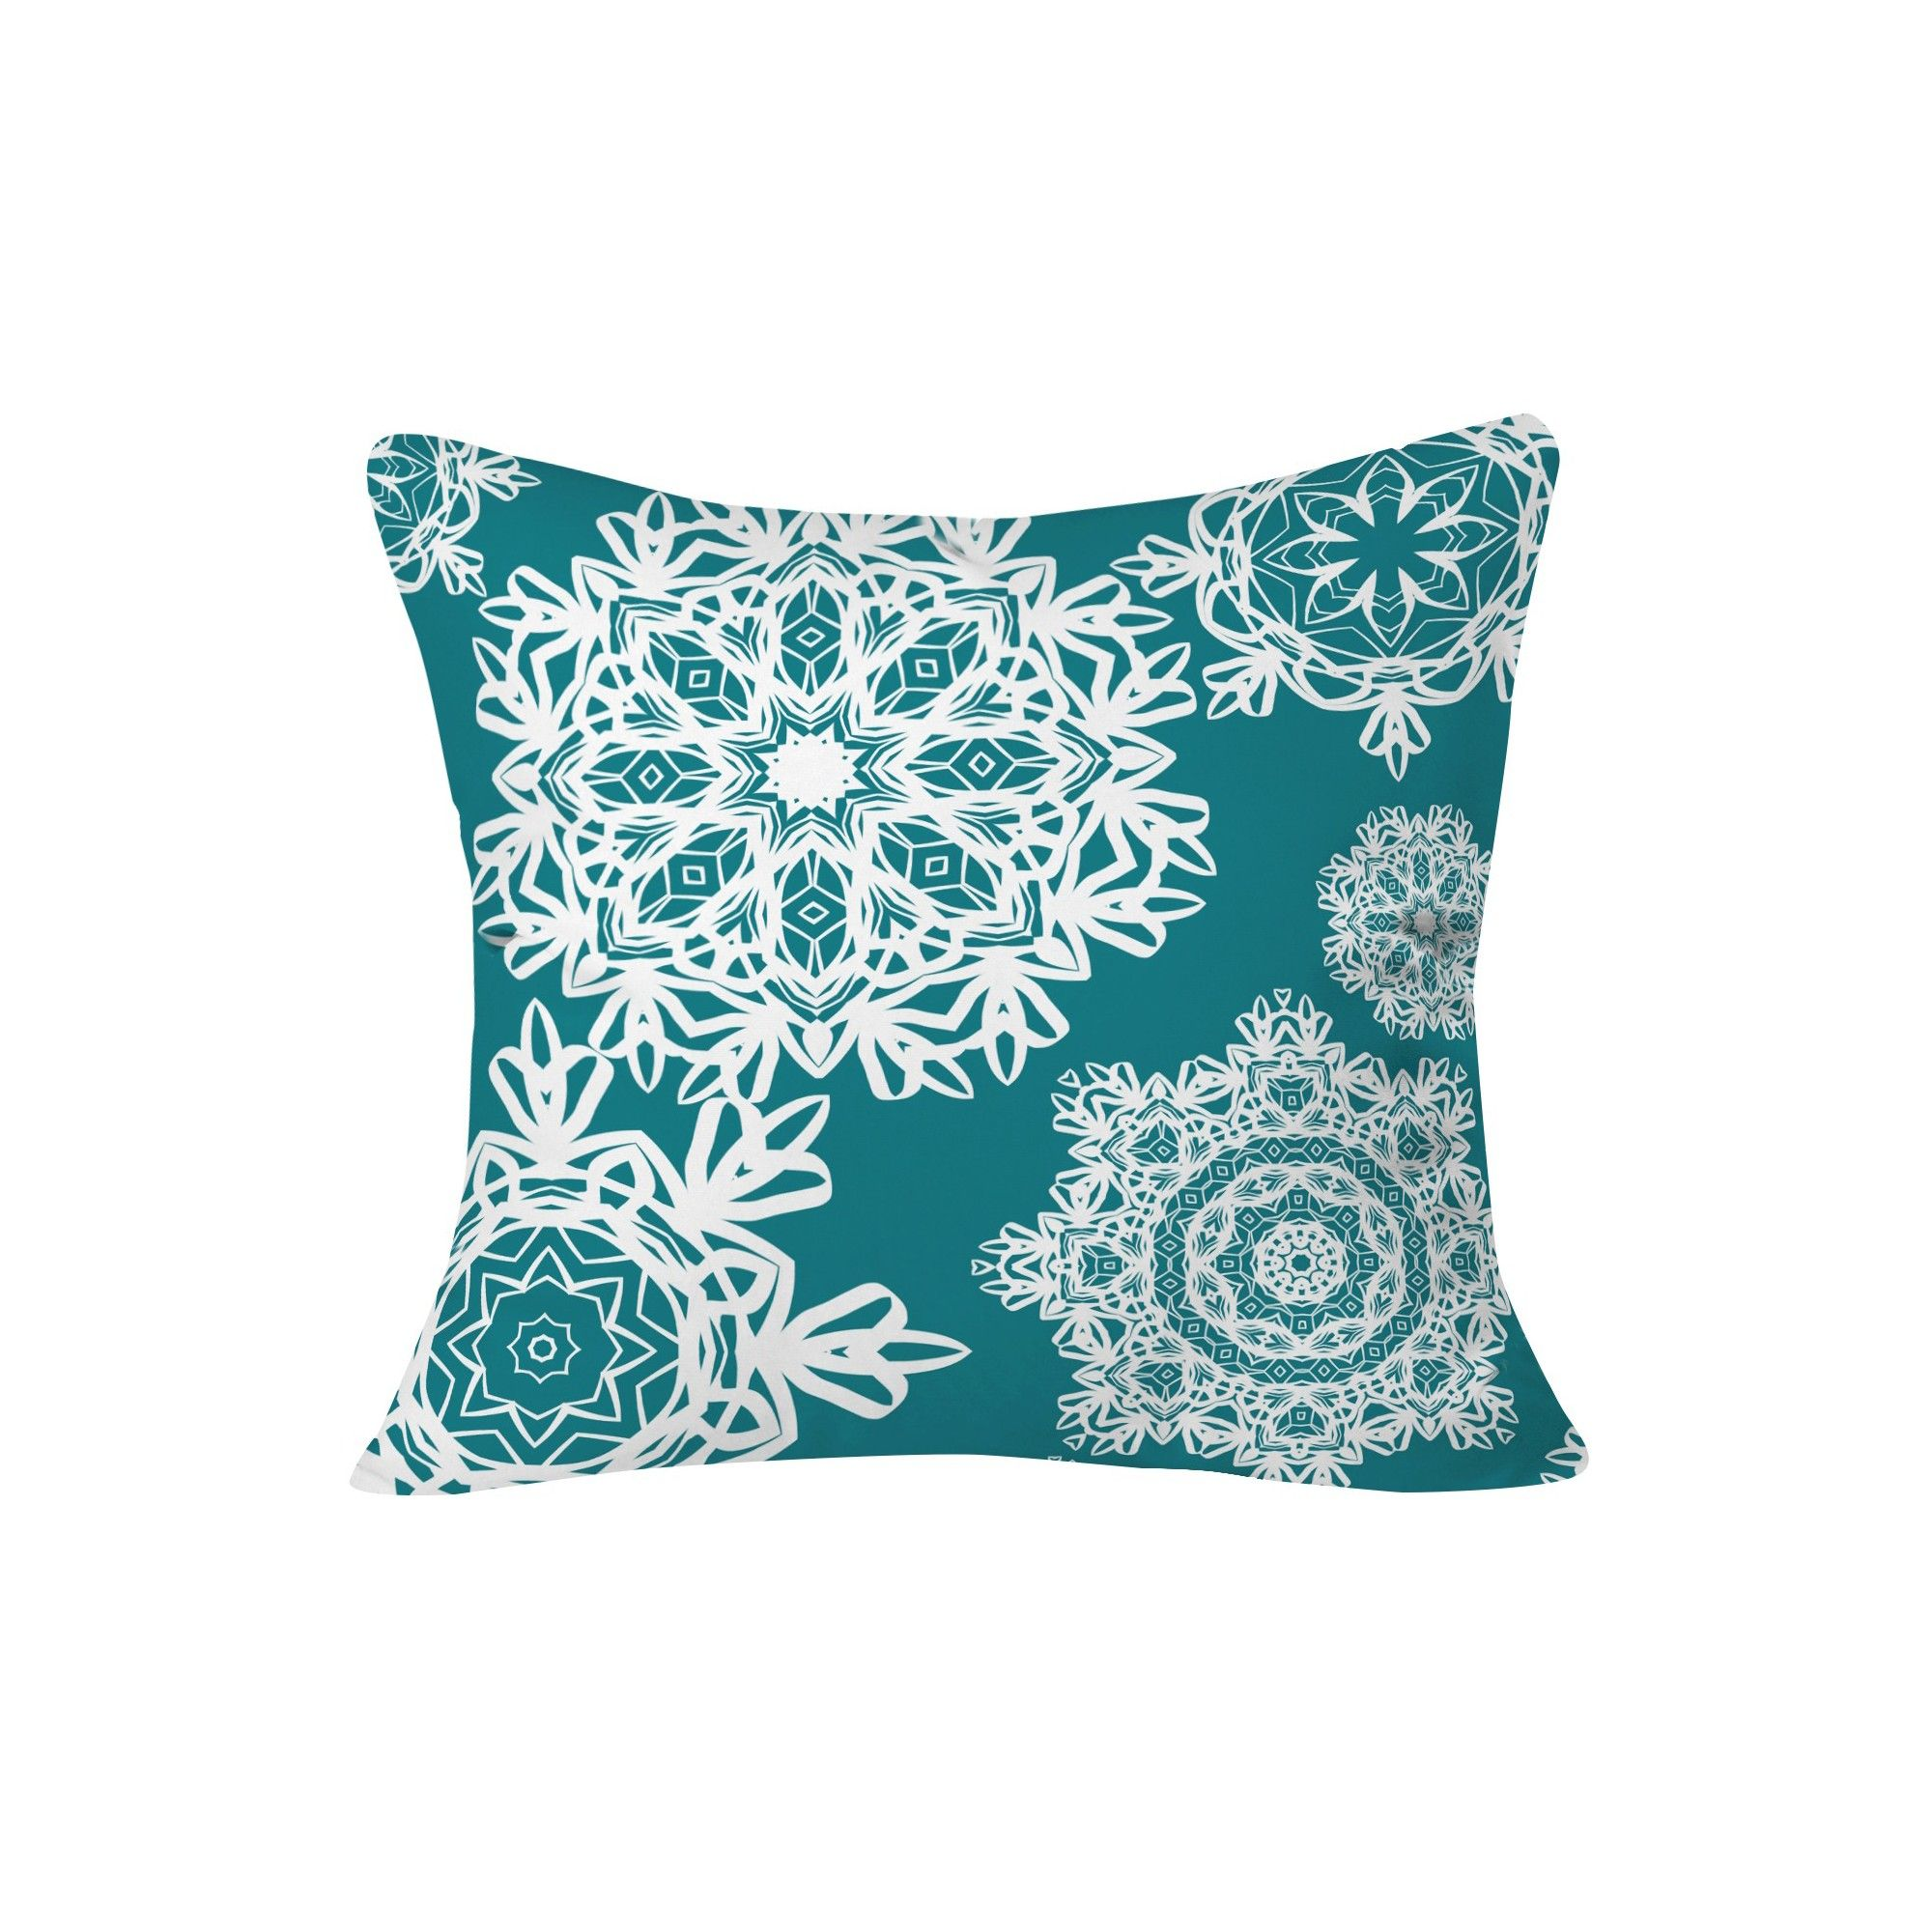 Deep Turquoise Flurries Throw Pillow (20X20)  Deny Designs